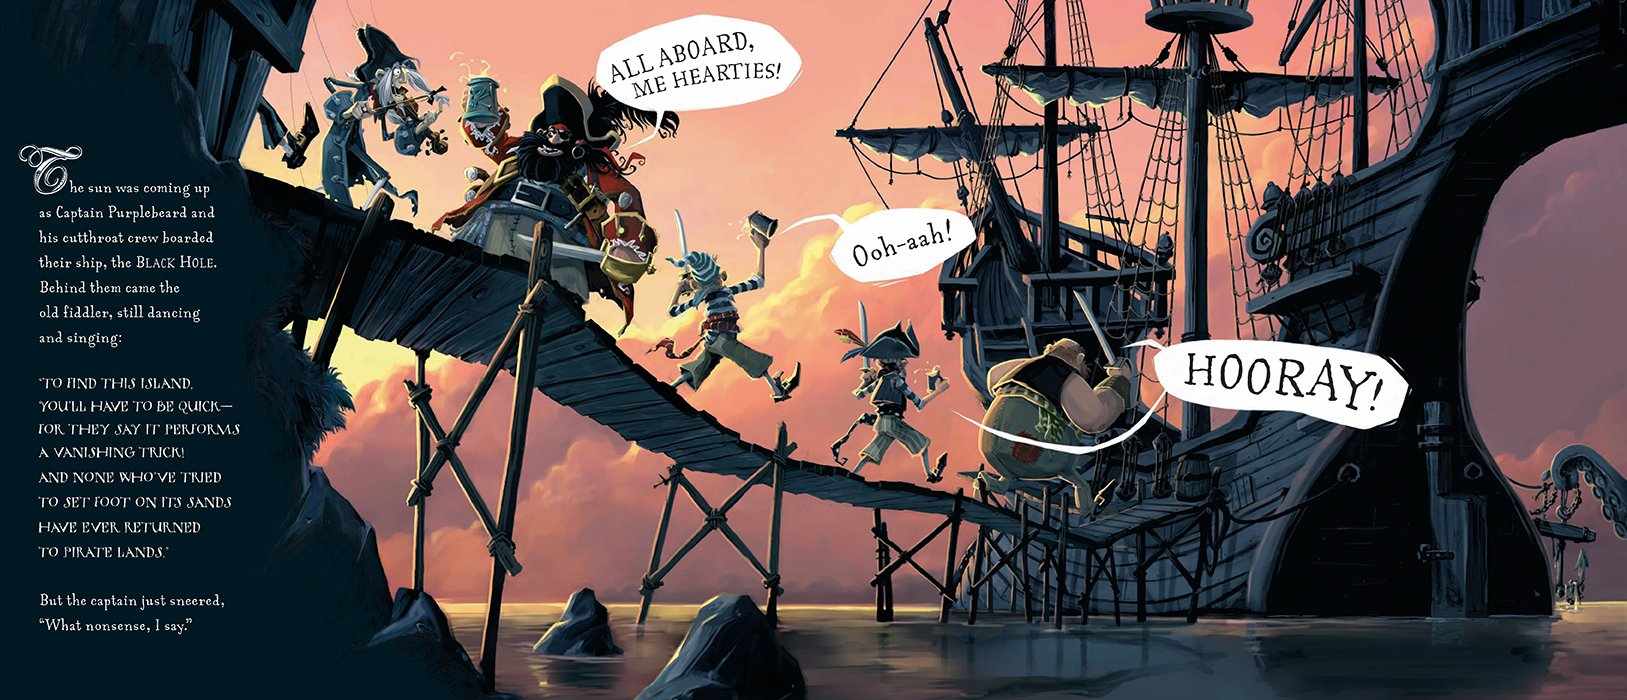 The Pirate Cruncher by Templar (Image #4)